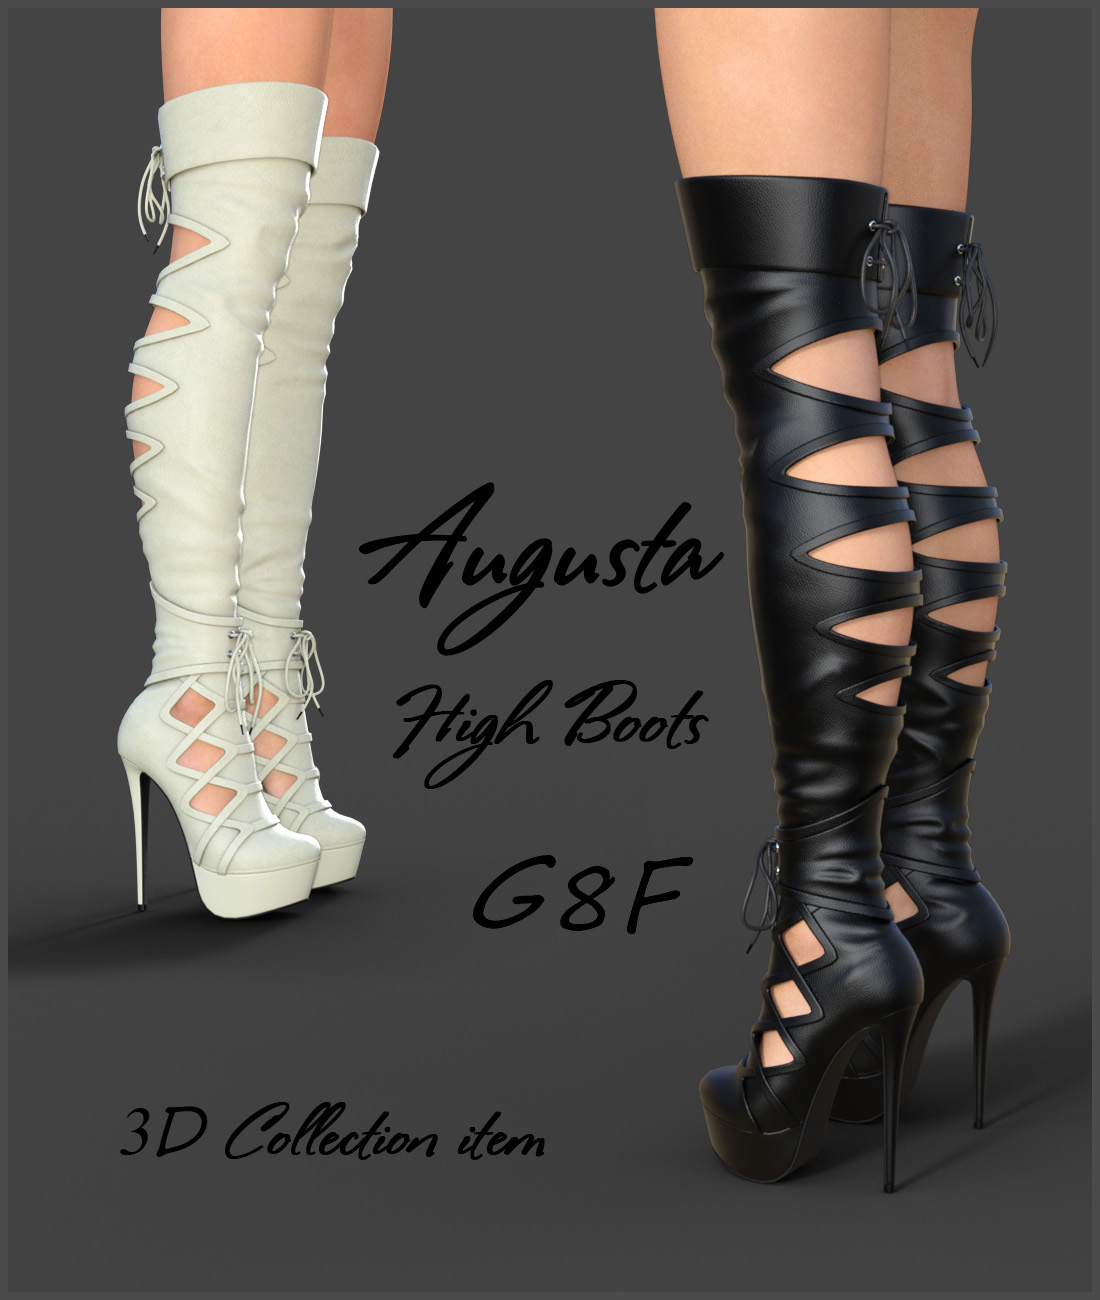 Augusta High Boots for Genesis 8 Females by Onnel